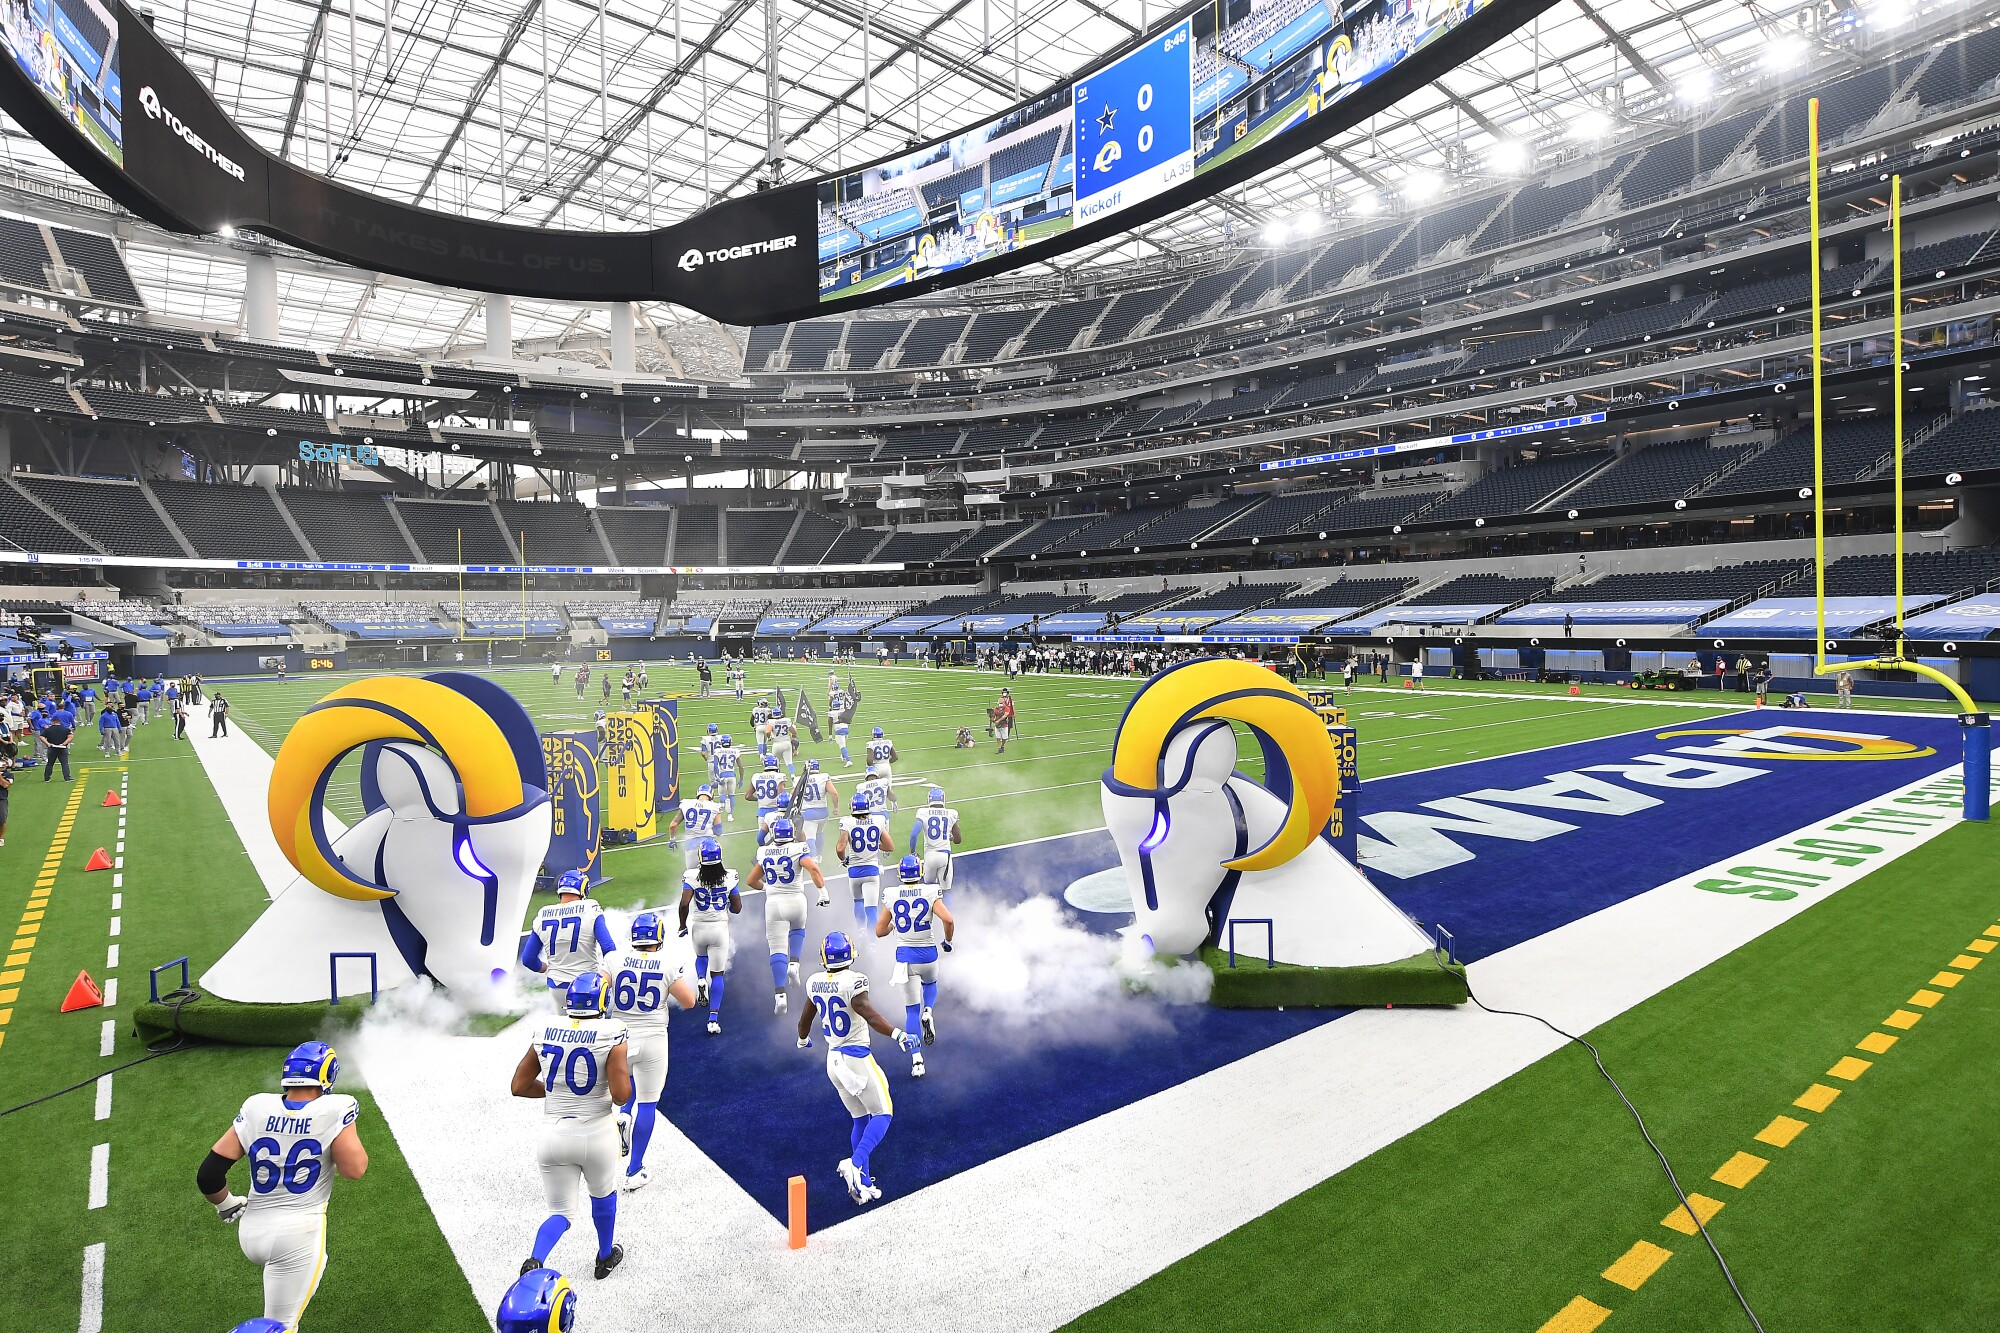 Rams players run onto the field at SoFi Stadium before Sunday's 20-17 win over the Dallas Cowboys.